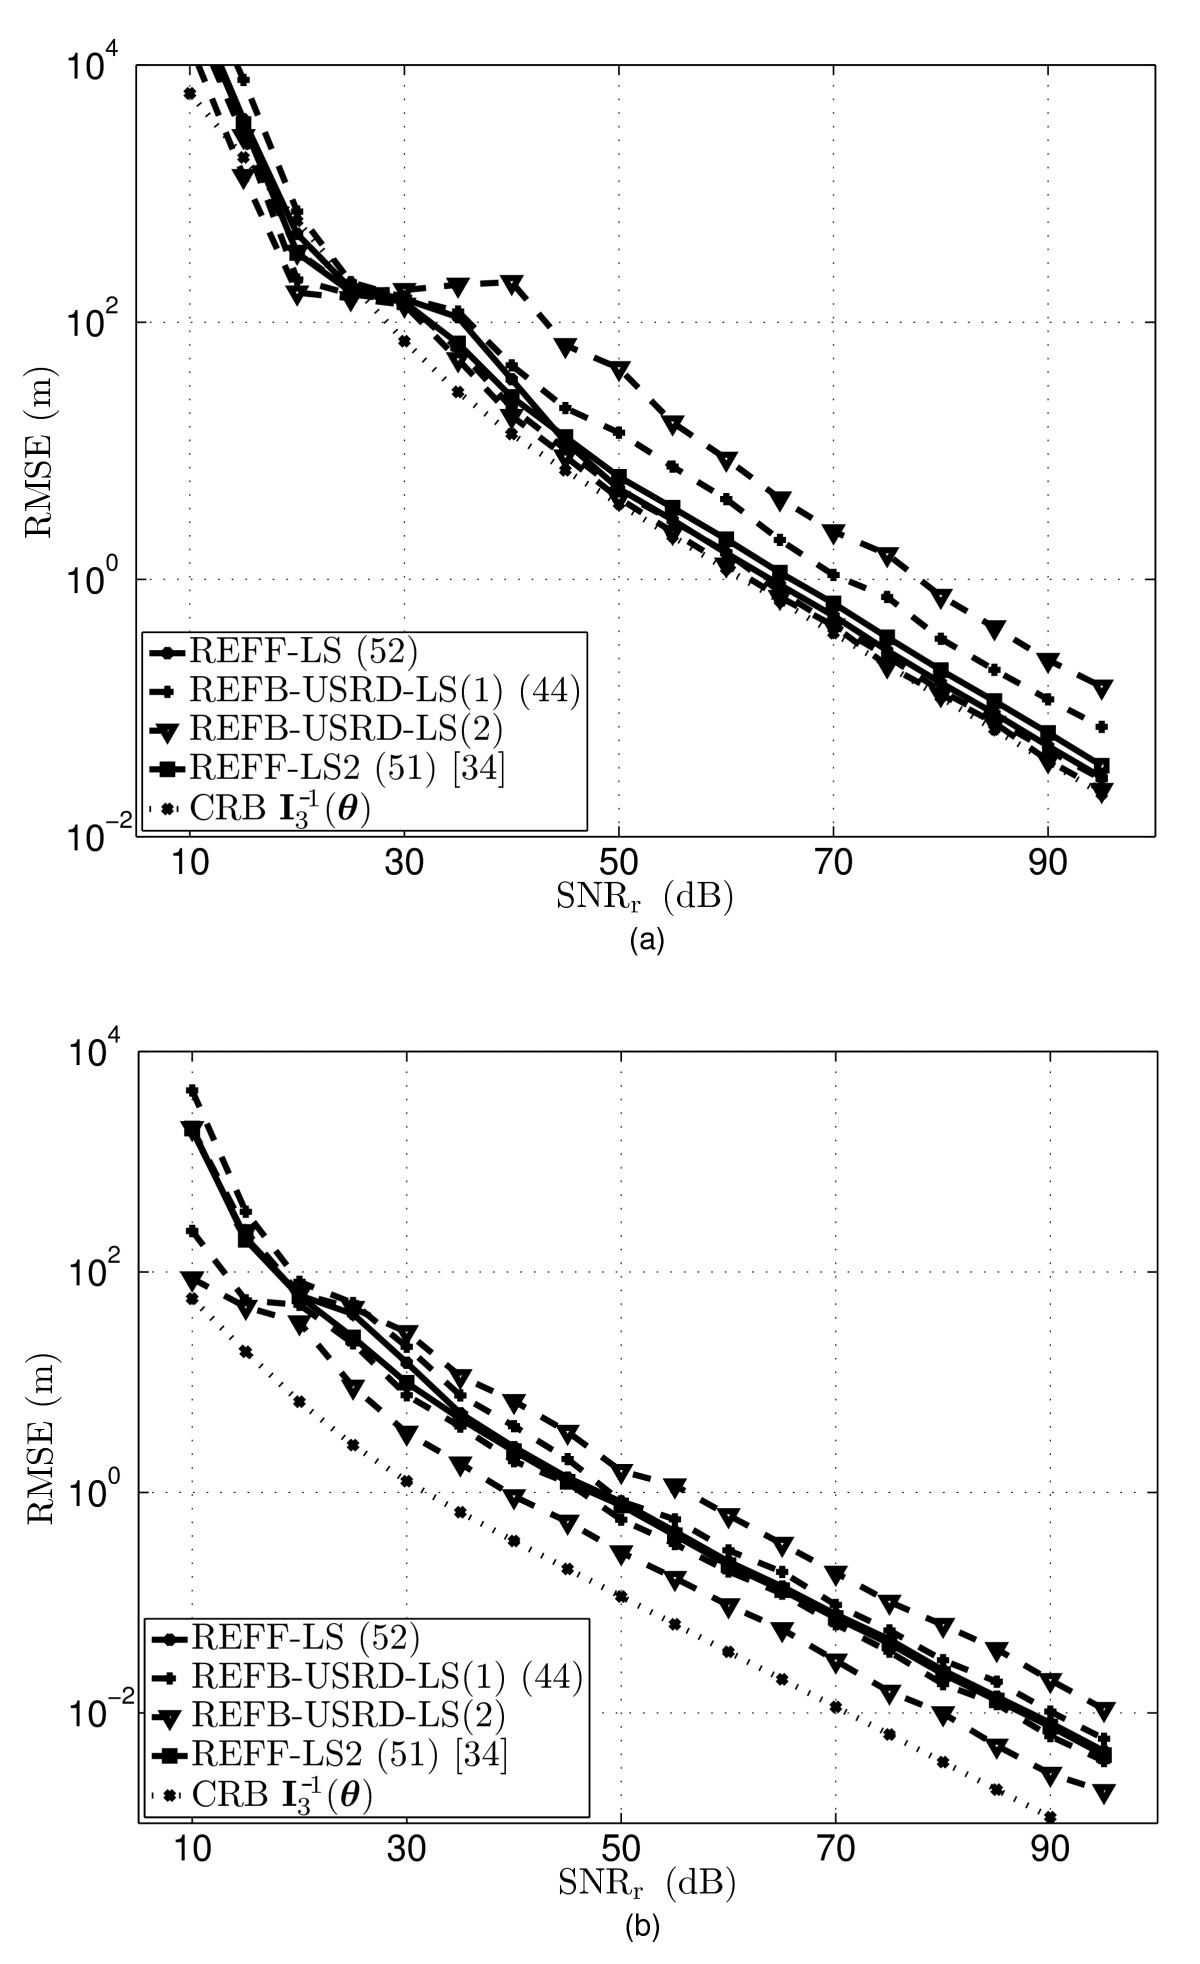 http://static-content.springer.com/image/art%3A10.1186%2F1687-6180-2012-19/MediaObjects/13634_2011_Article_181_Fig5_HTML.jpg